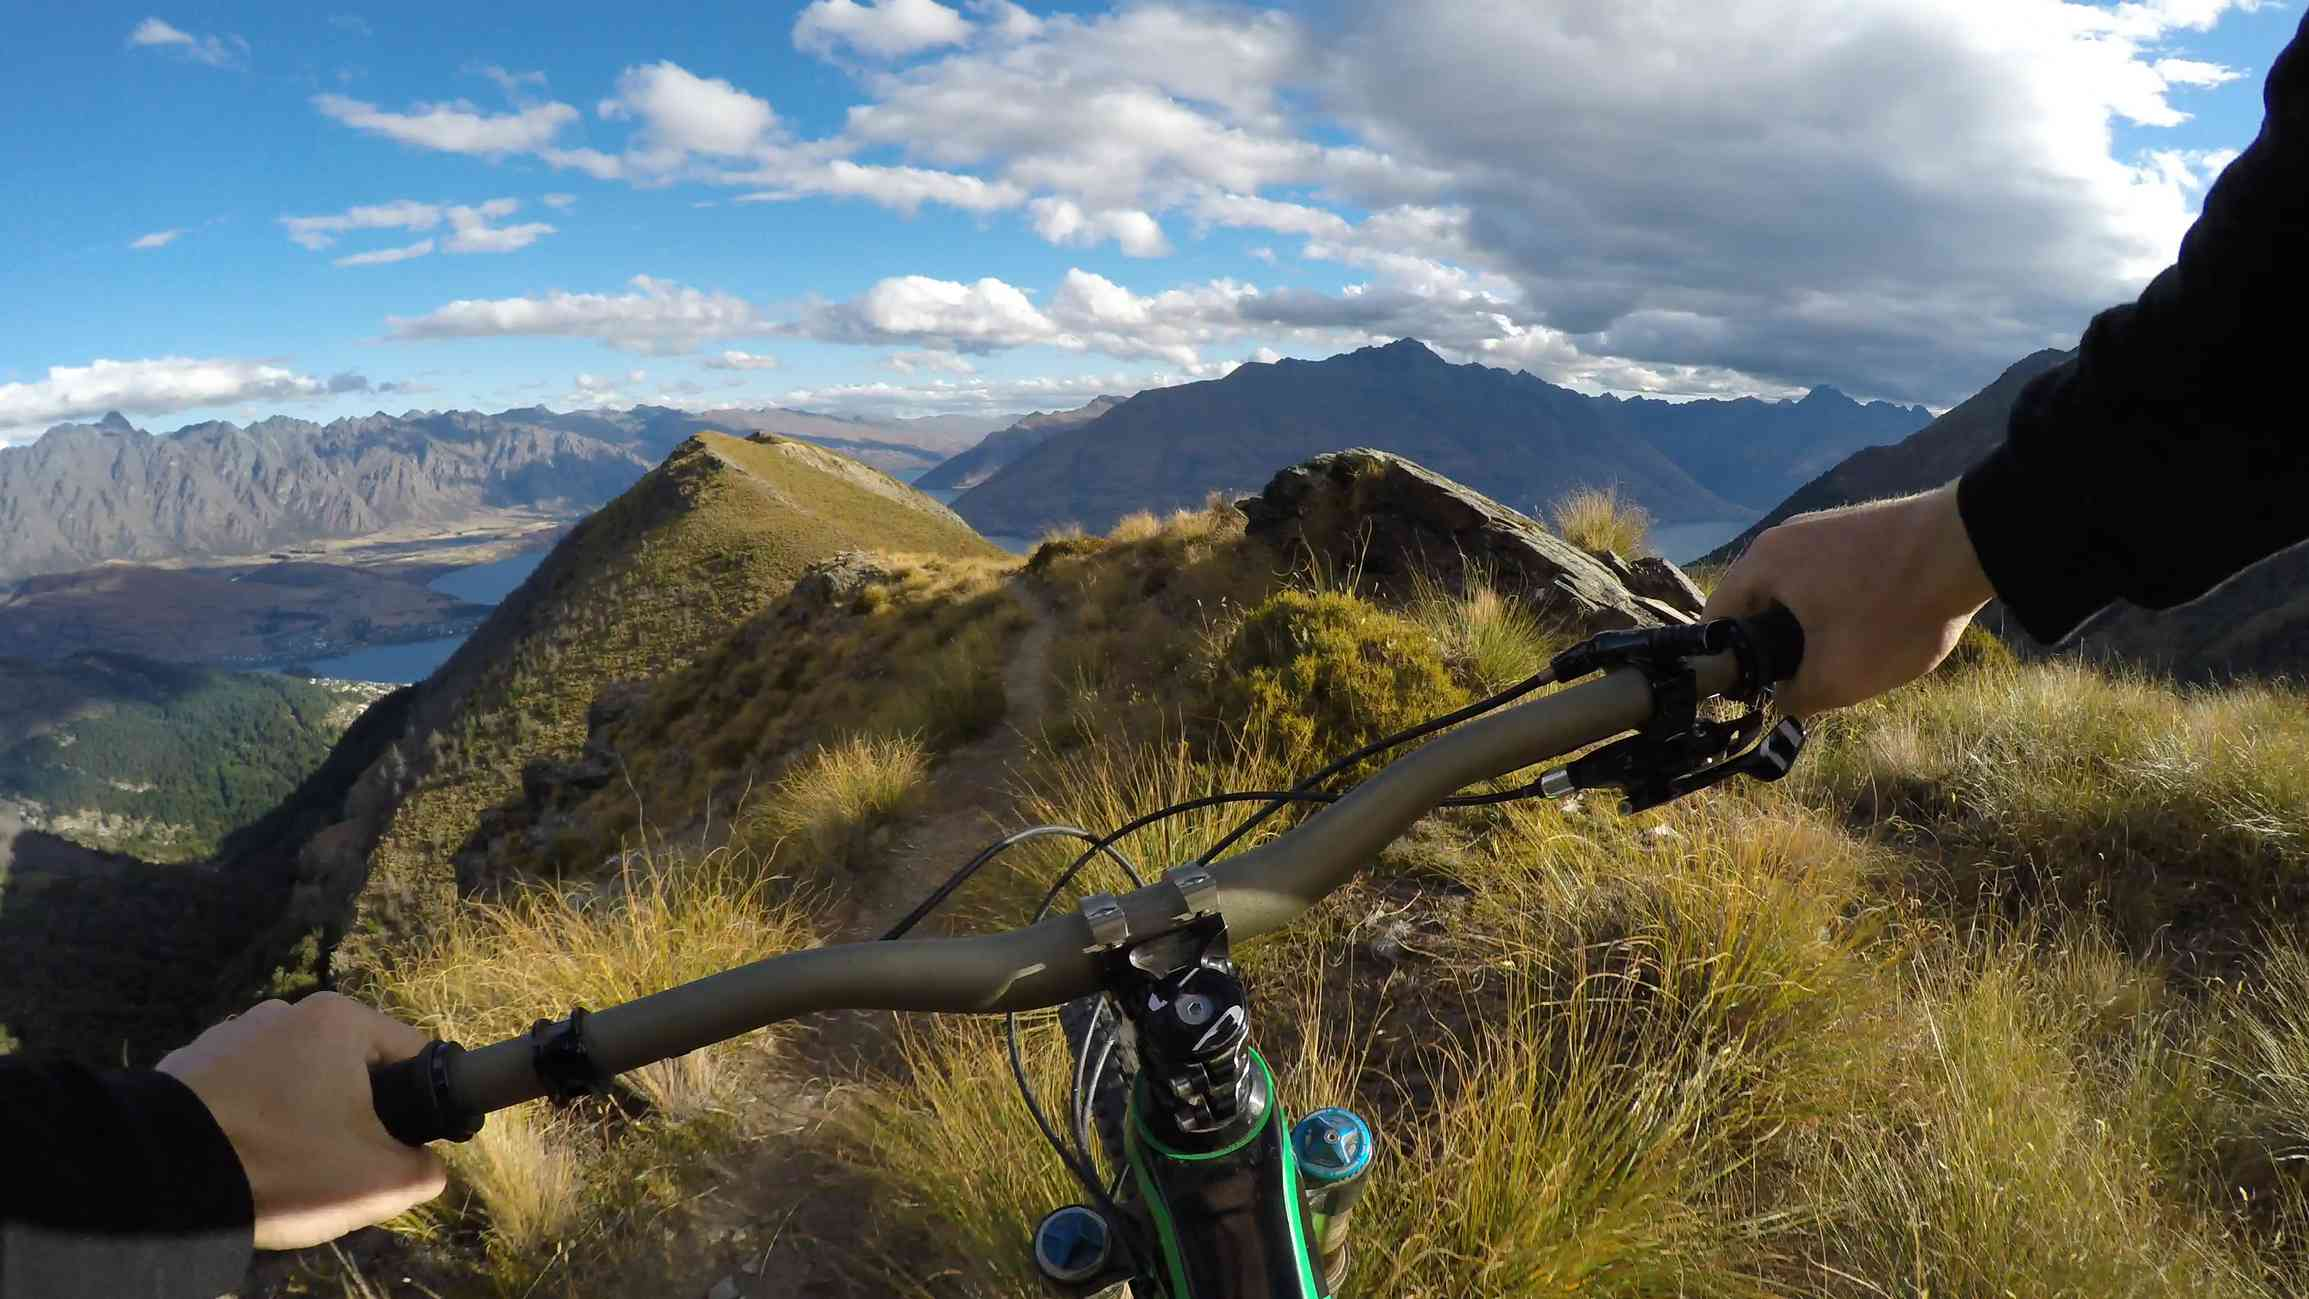 hands gripping bike handlebars riding along grassy hill with mountains in background